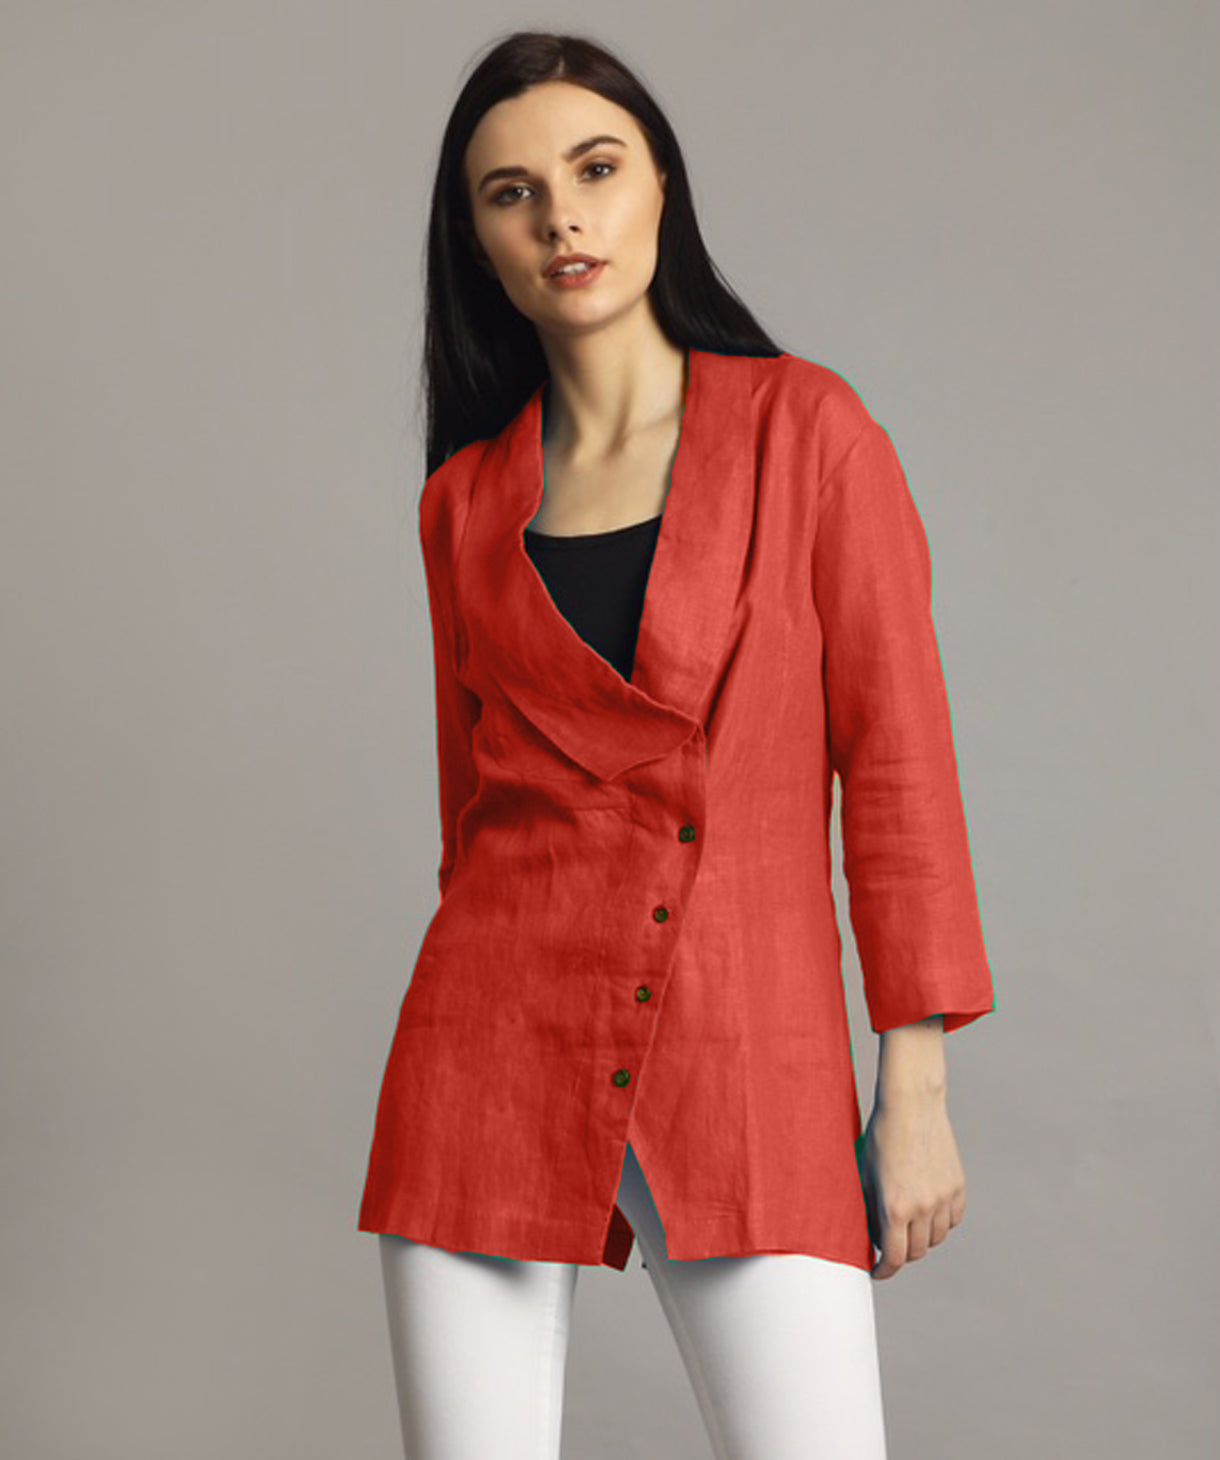 Uptownie Plus Coral Linen Jacket Style Tunic 1 trendsale